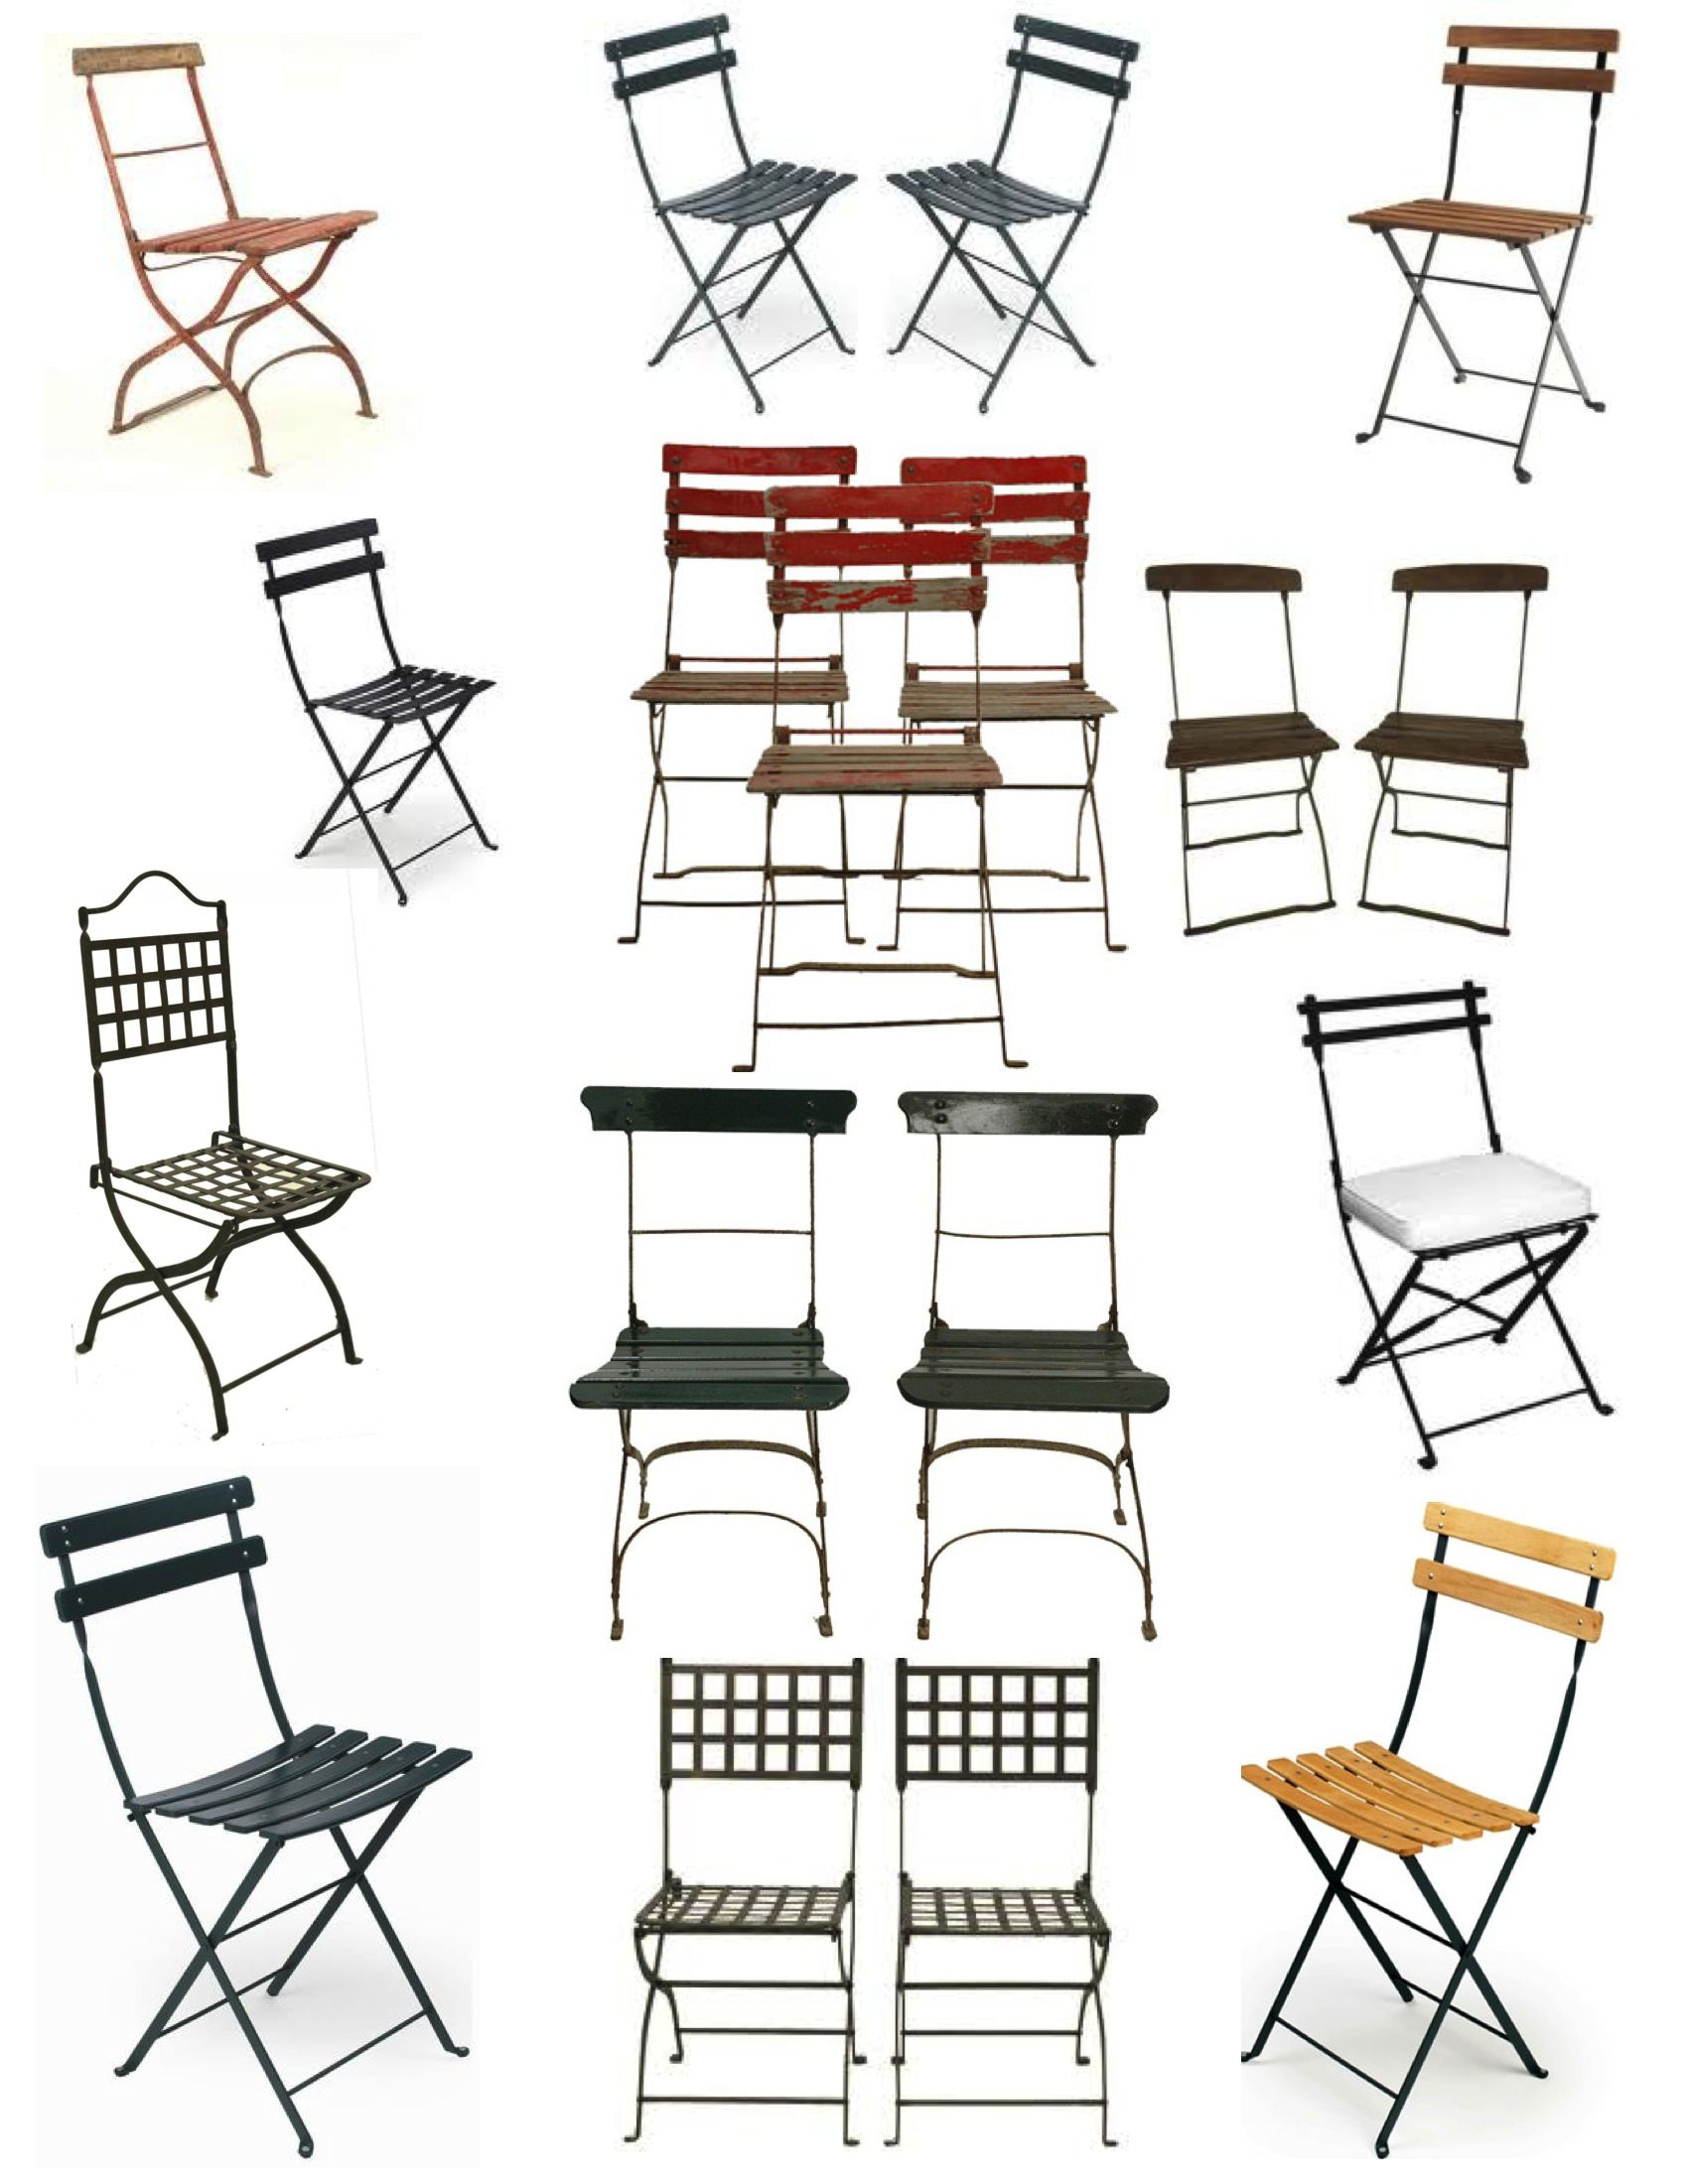 French Cafe Garden Folding Chairs